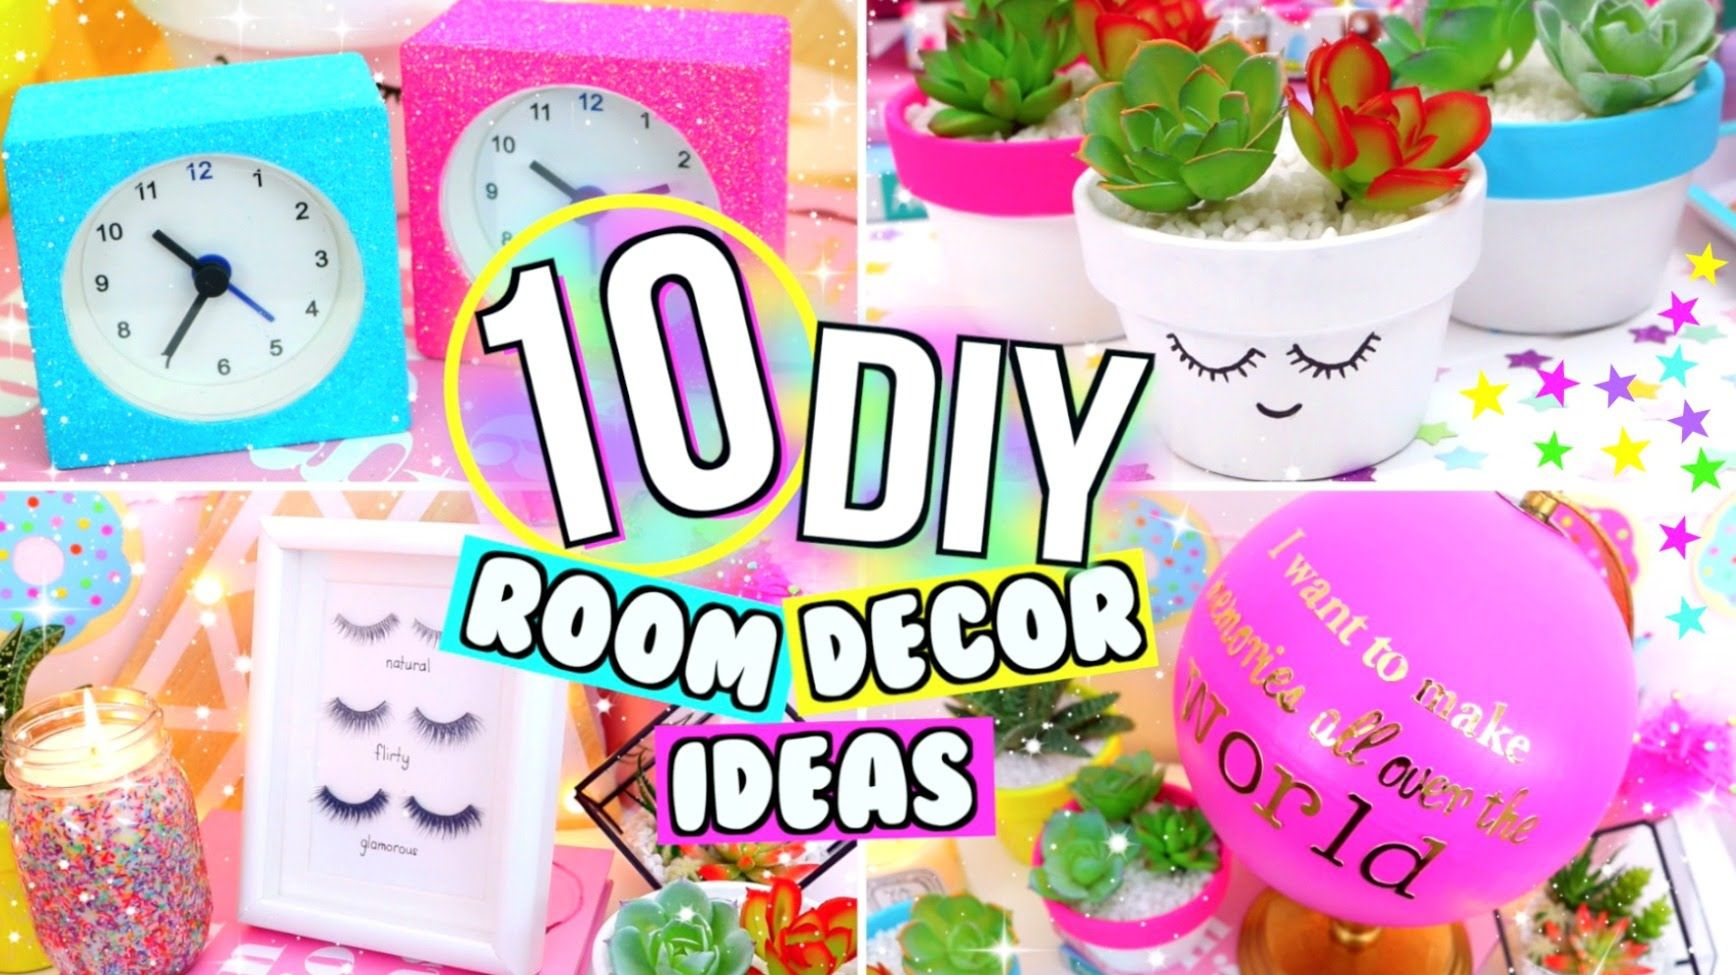 10 diy room decor ideas! fun diy room decor ideas you need to try